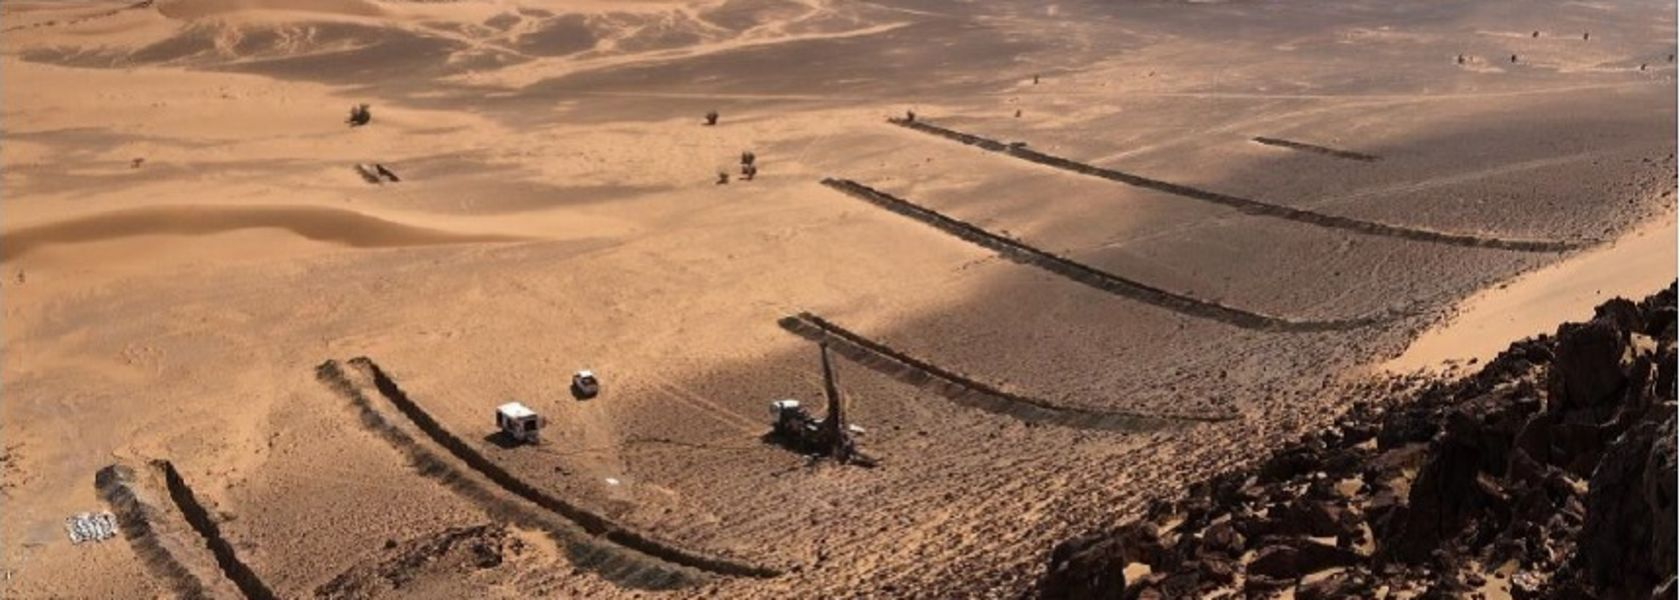 Middle East mining faces uphill battle